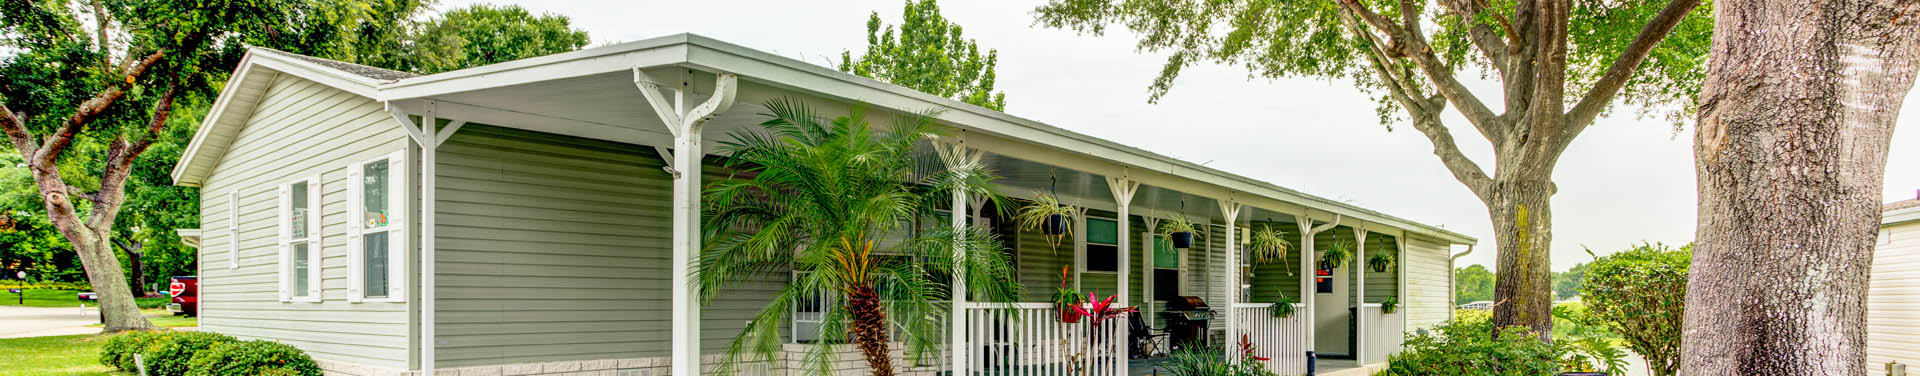 Photo of a mobile home with a nice front porch and greenish siding, surrounded by trees